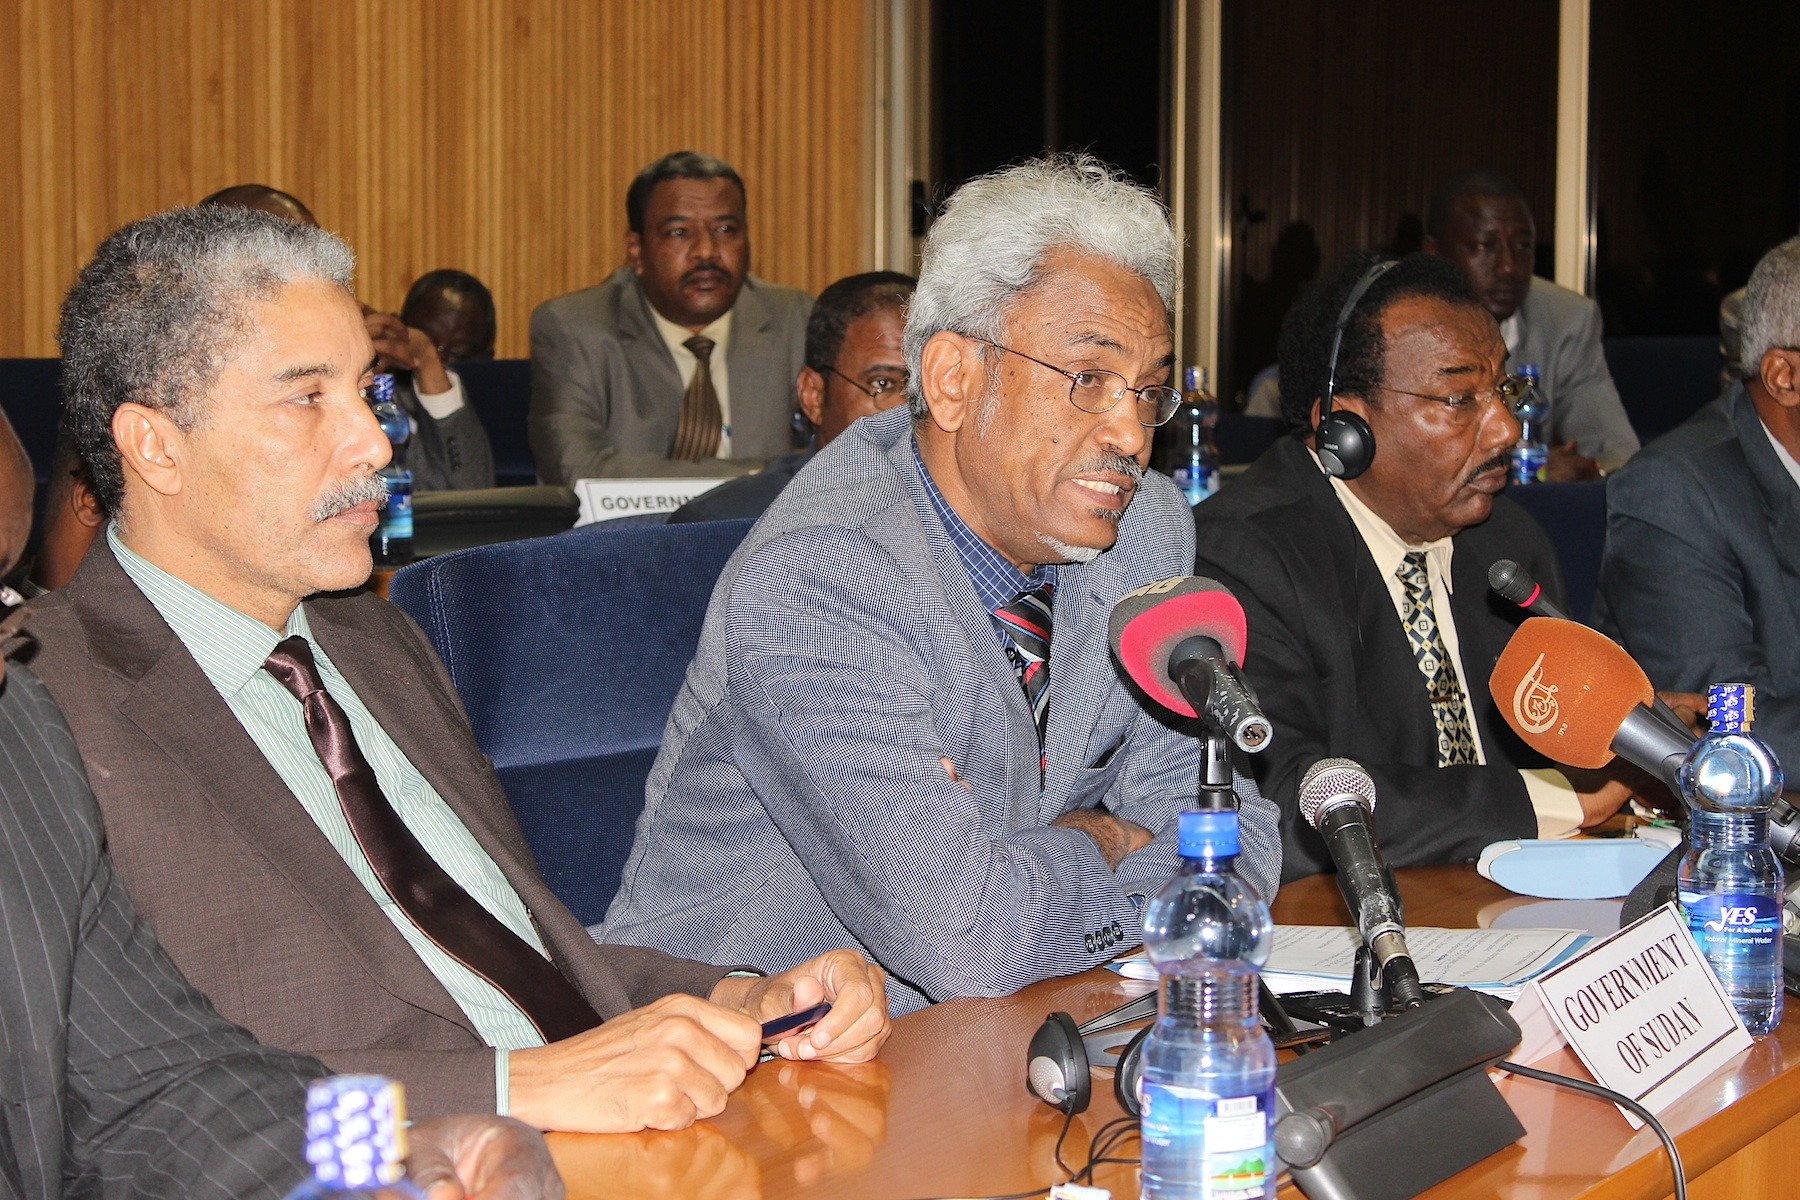 Statement of Government of Sudan by Dr. Amin Omer Hassan on the occasion of the opening session of Darfur peace talks